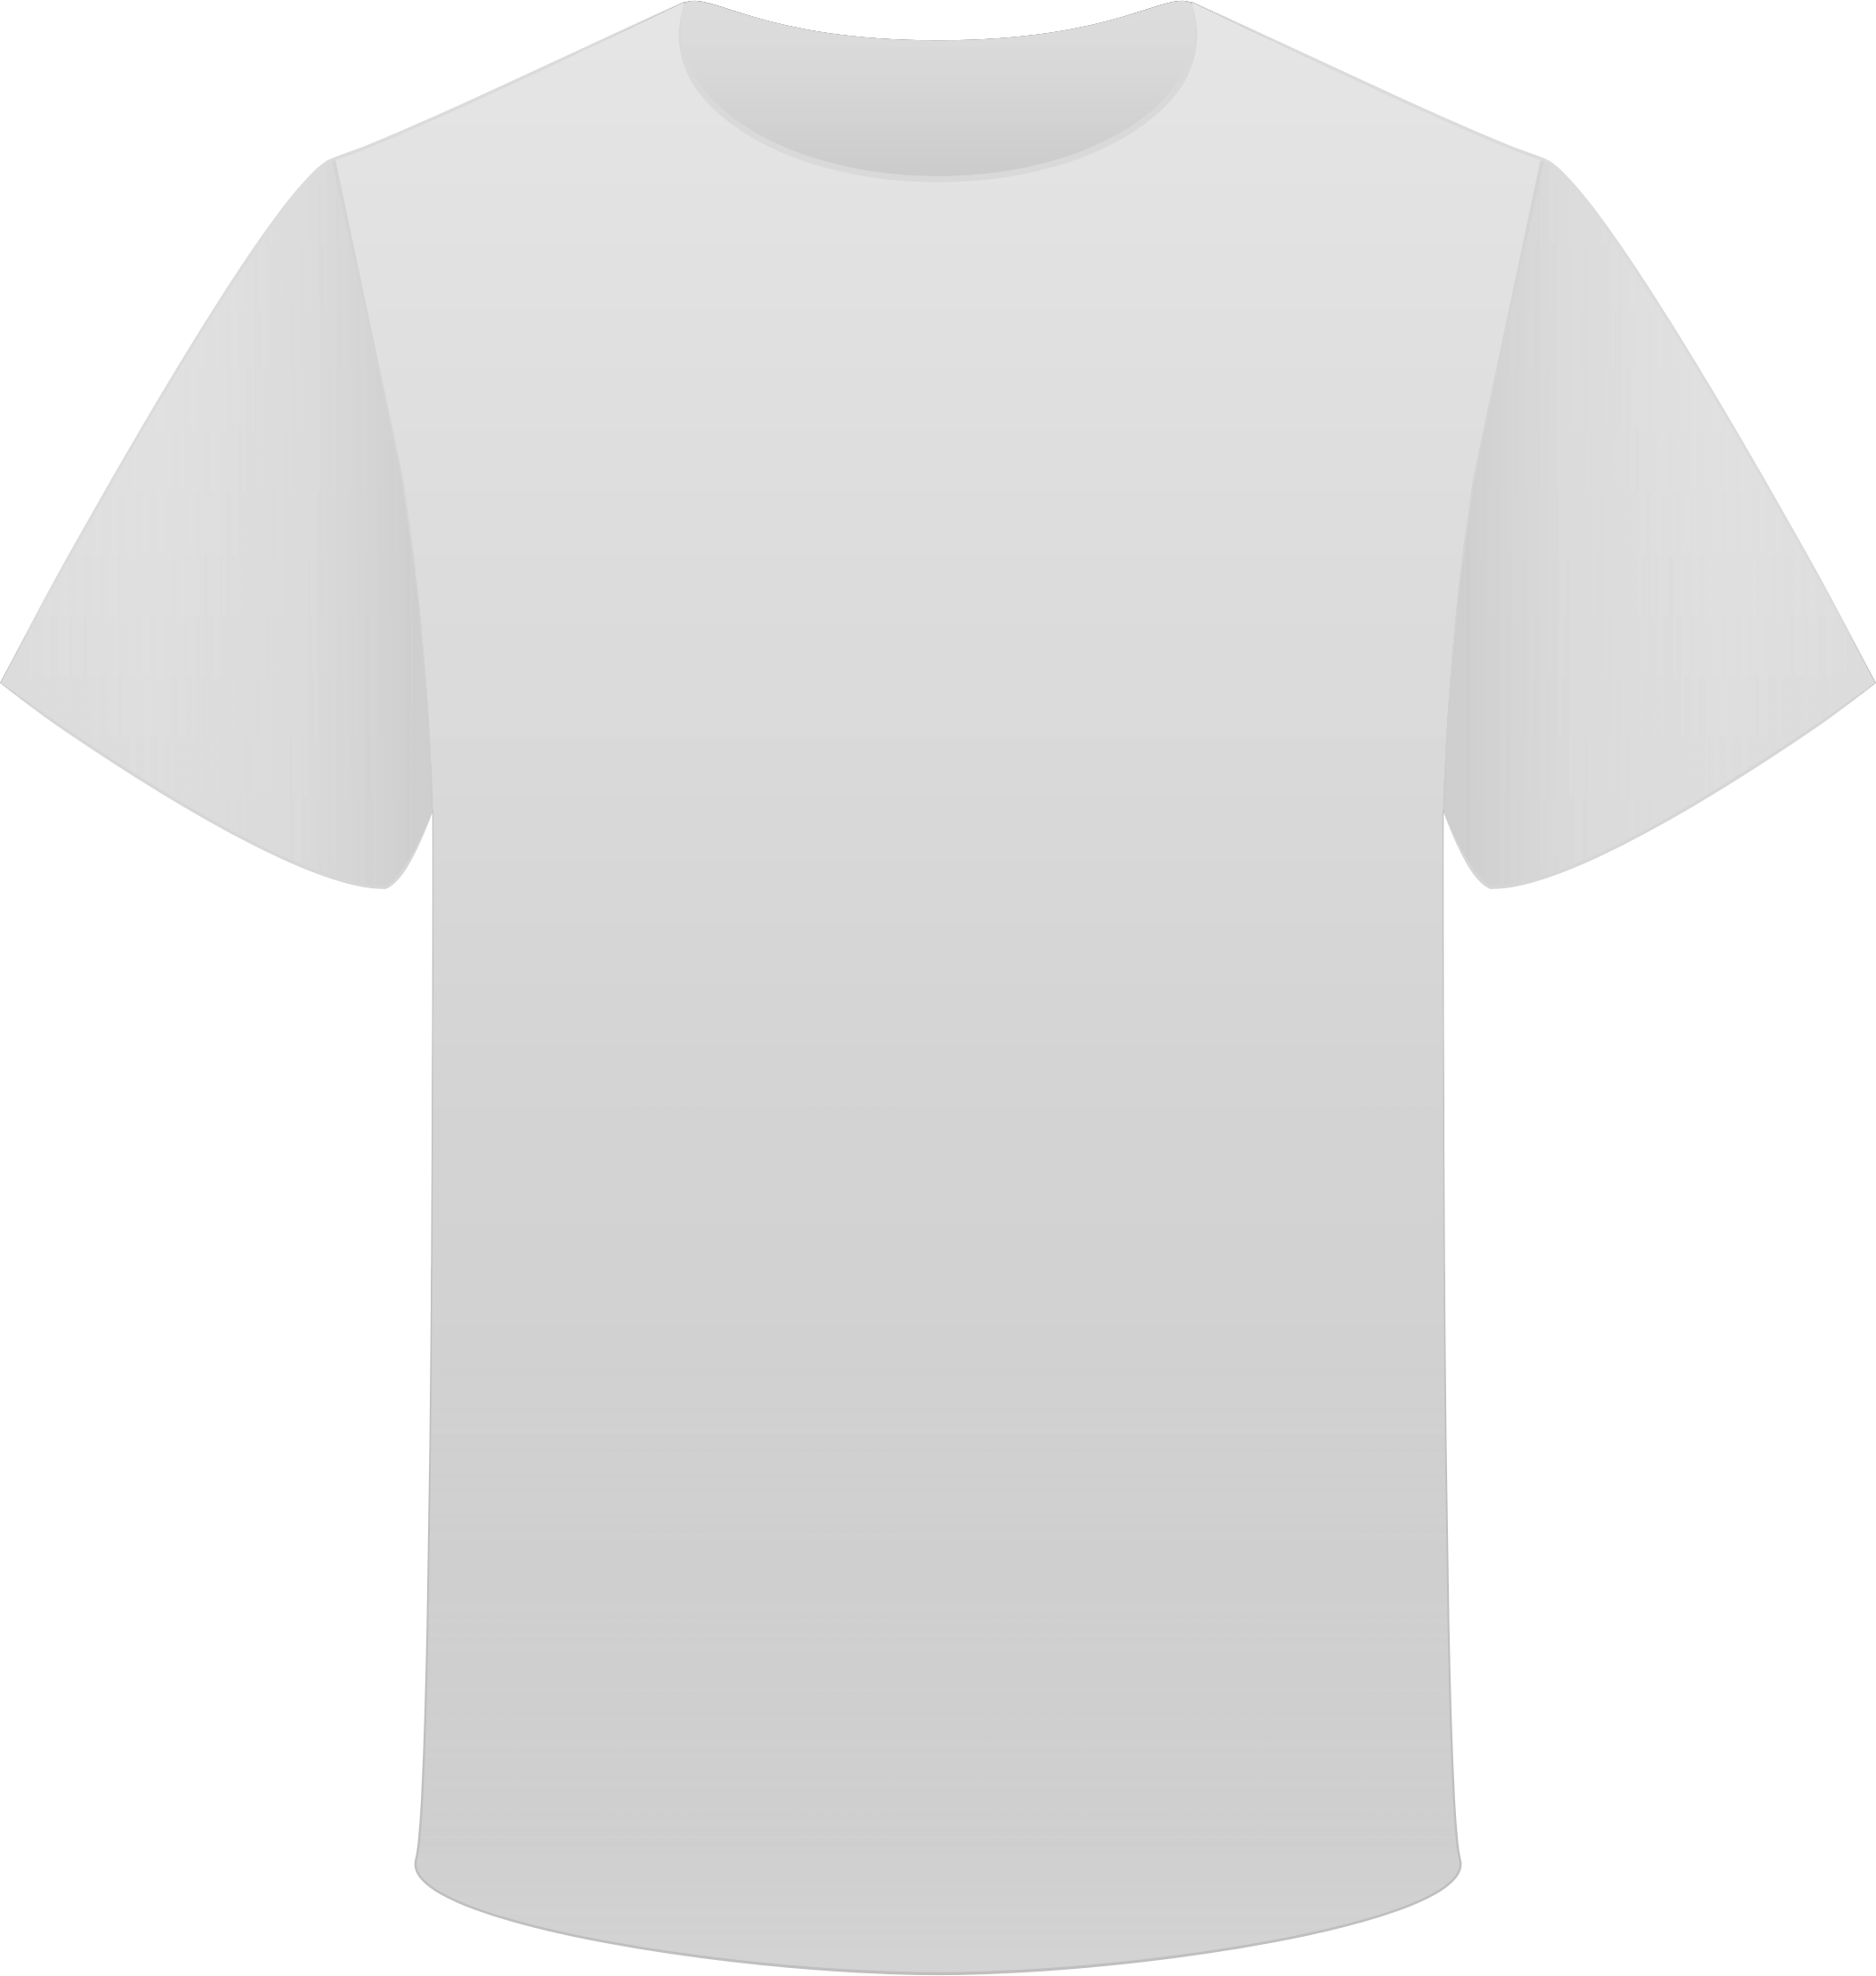 Clipart shirt gray shirt. Tshirt white transparent png